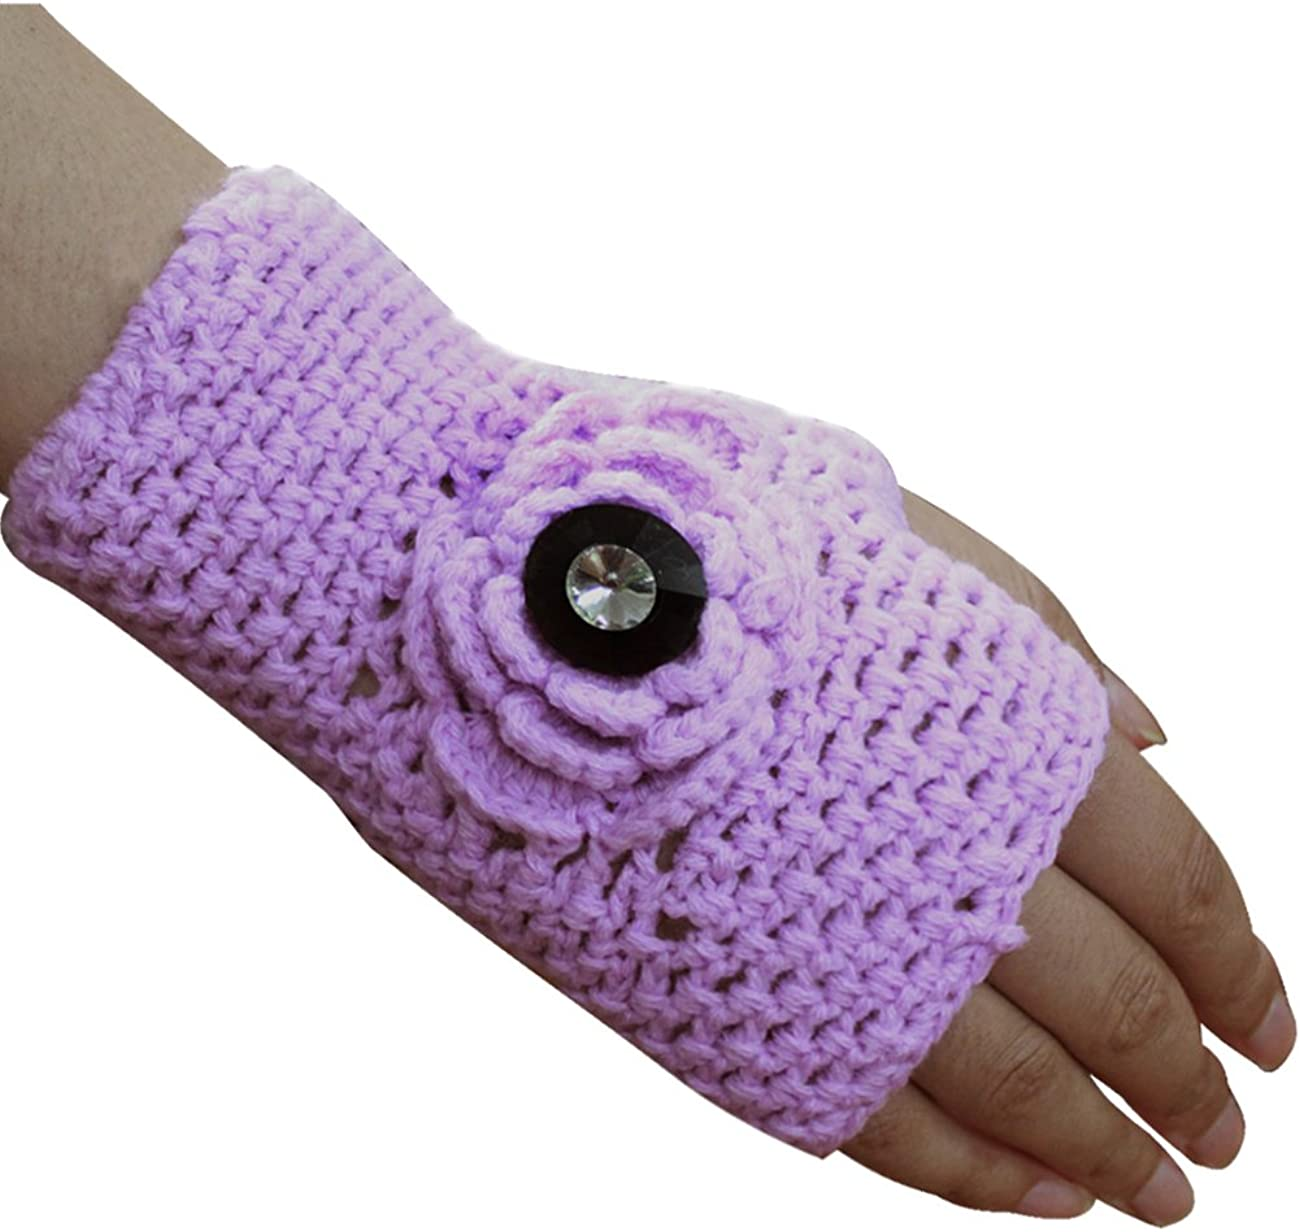 Dahlia Fingerless Gloves for Women - Sythetic Wool, Knitted Hand Warmers